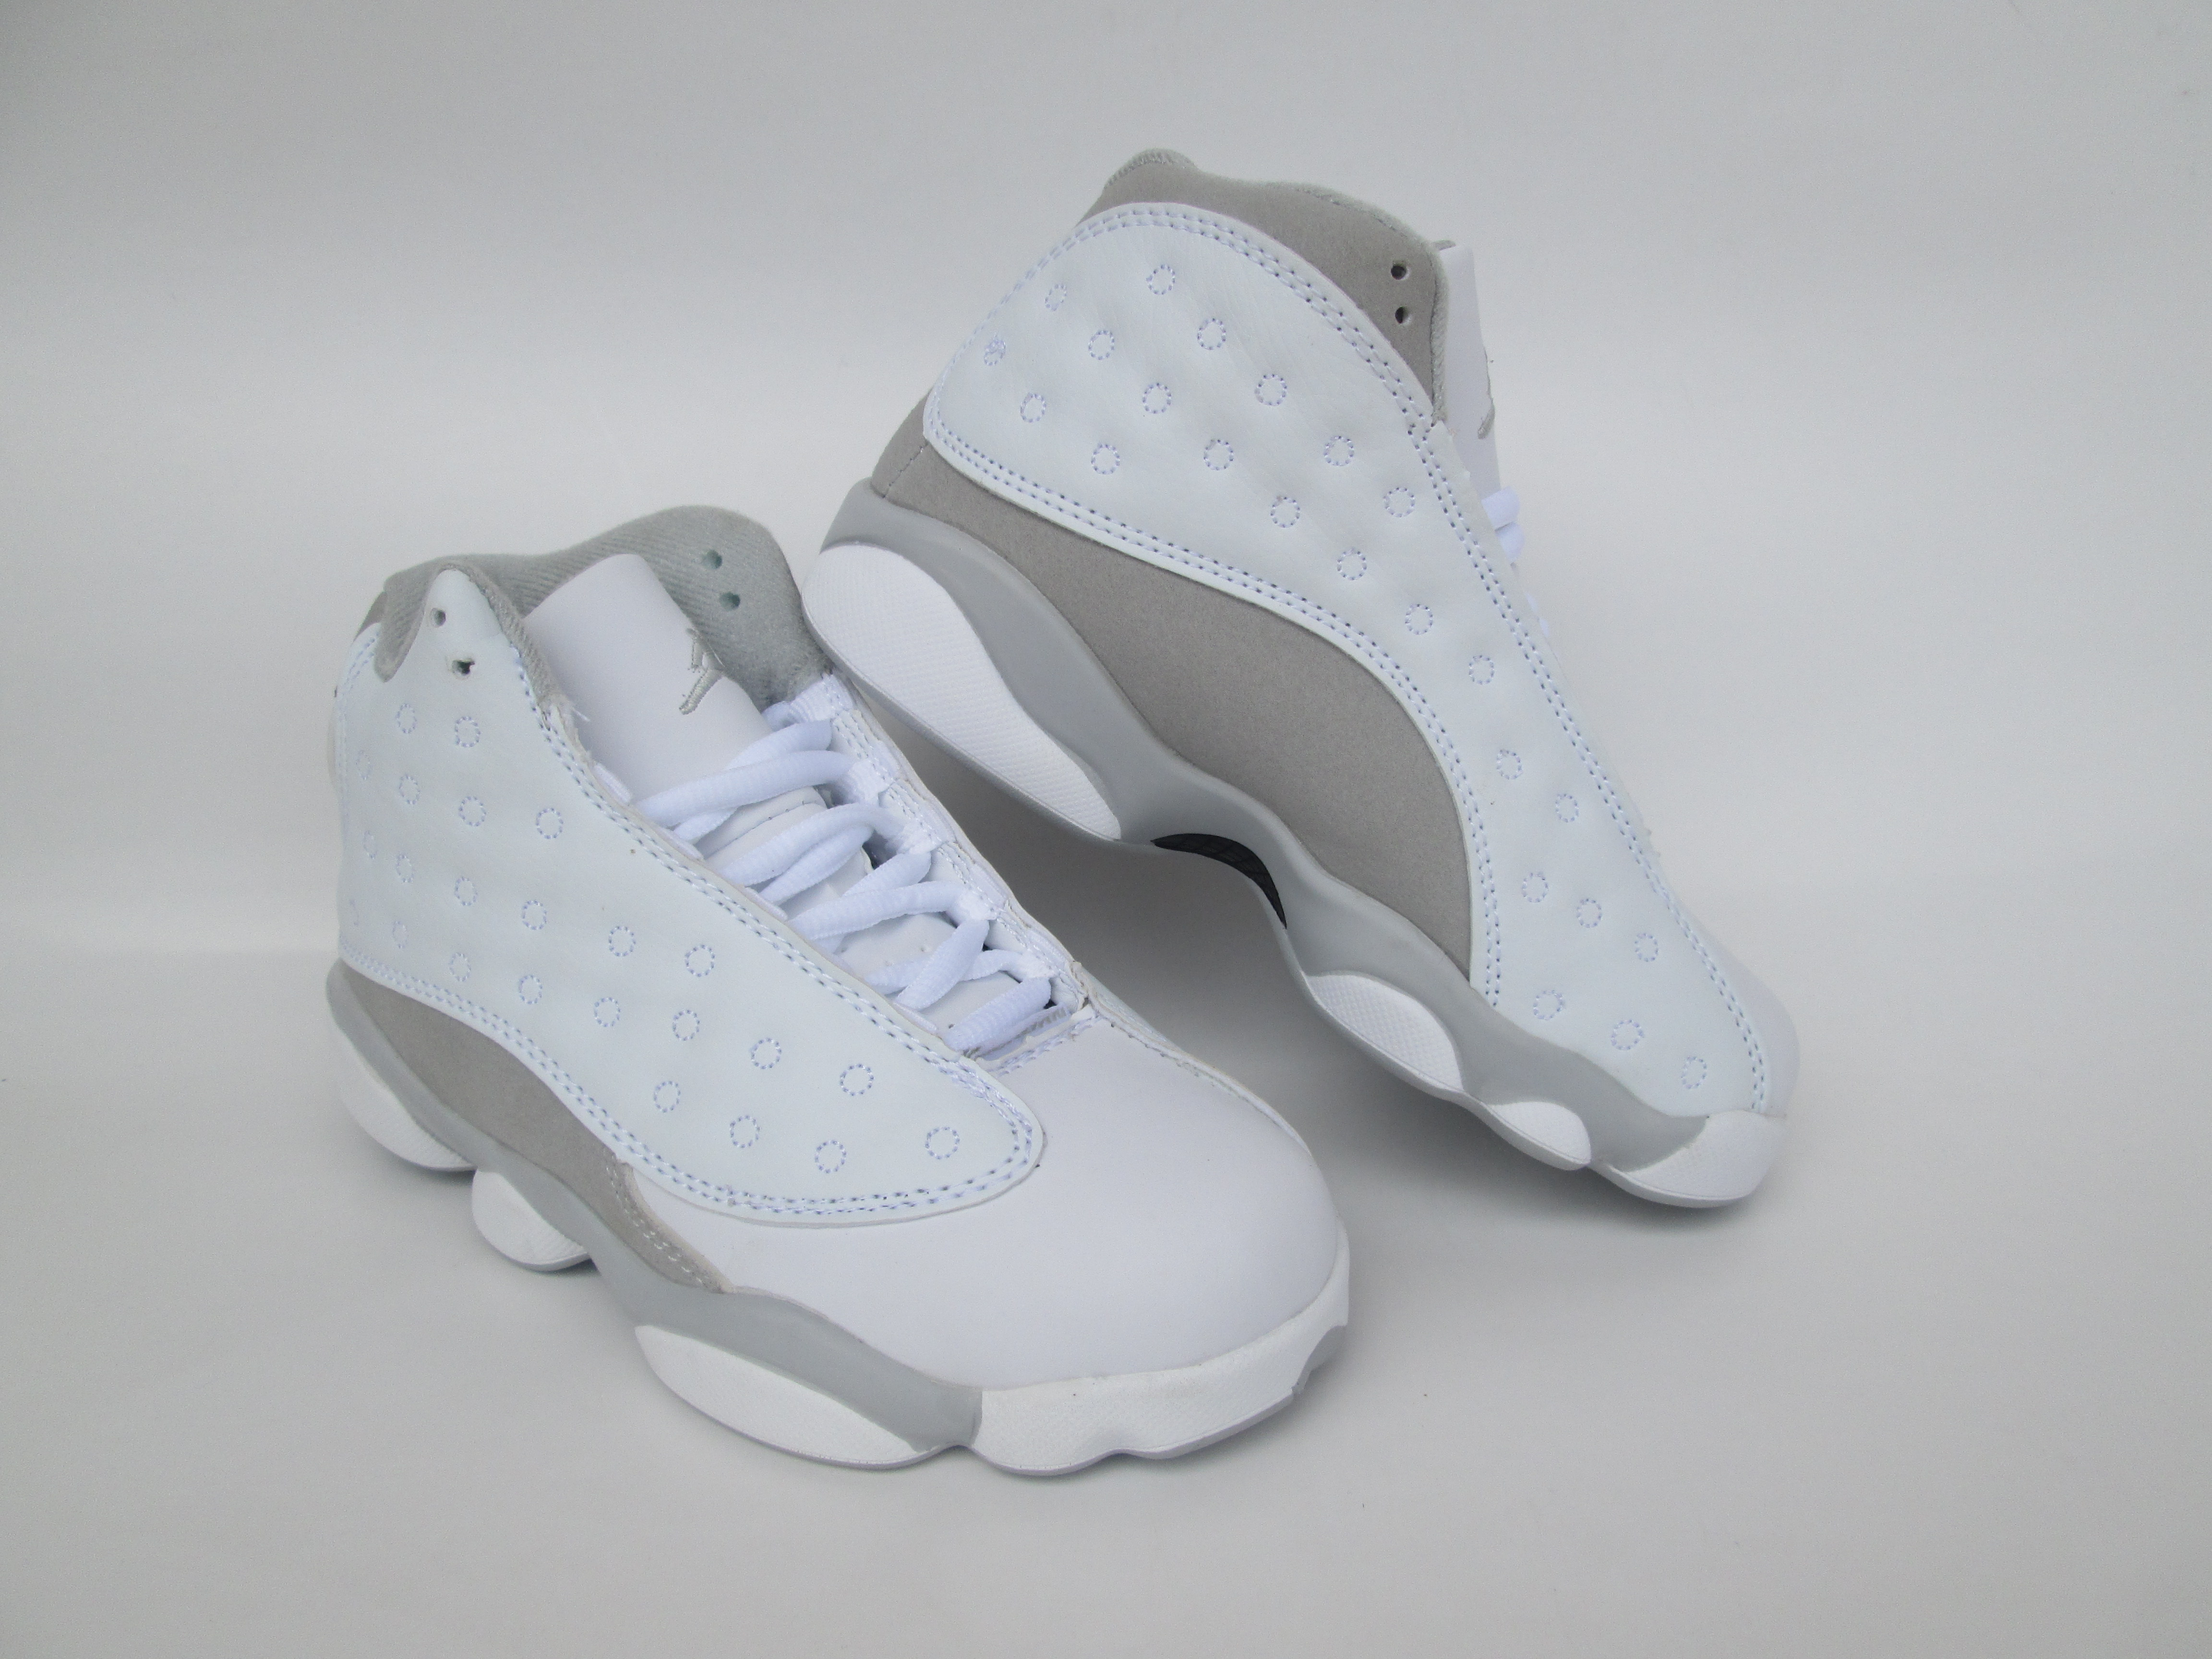 New Air Jordan 13 Deep White Grey Shoes For Kids